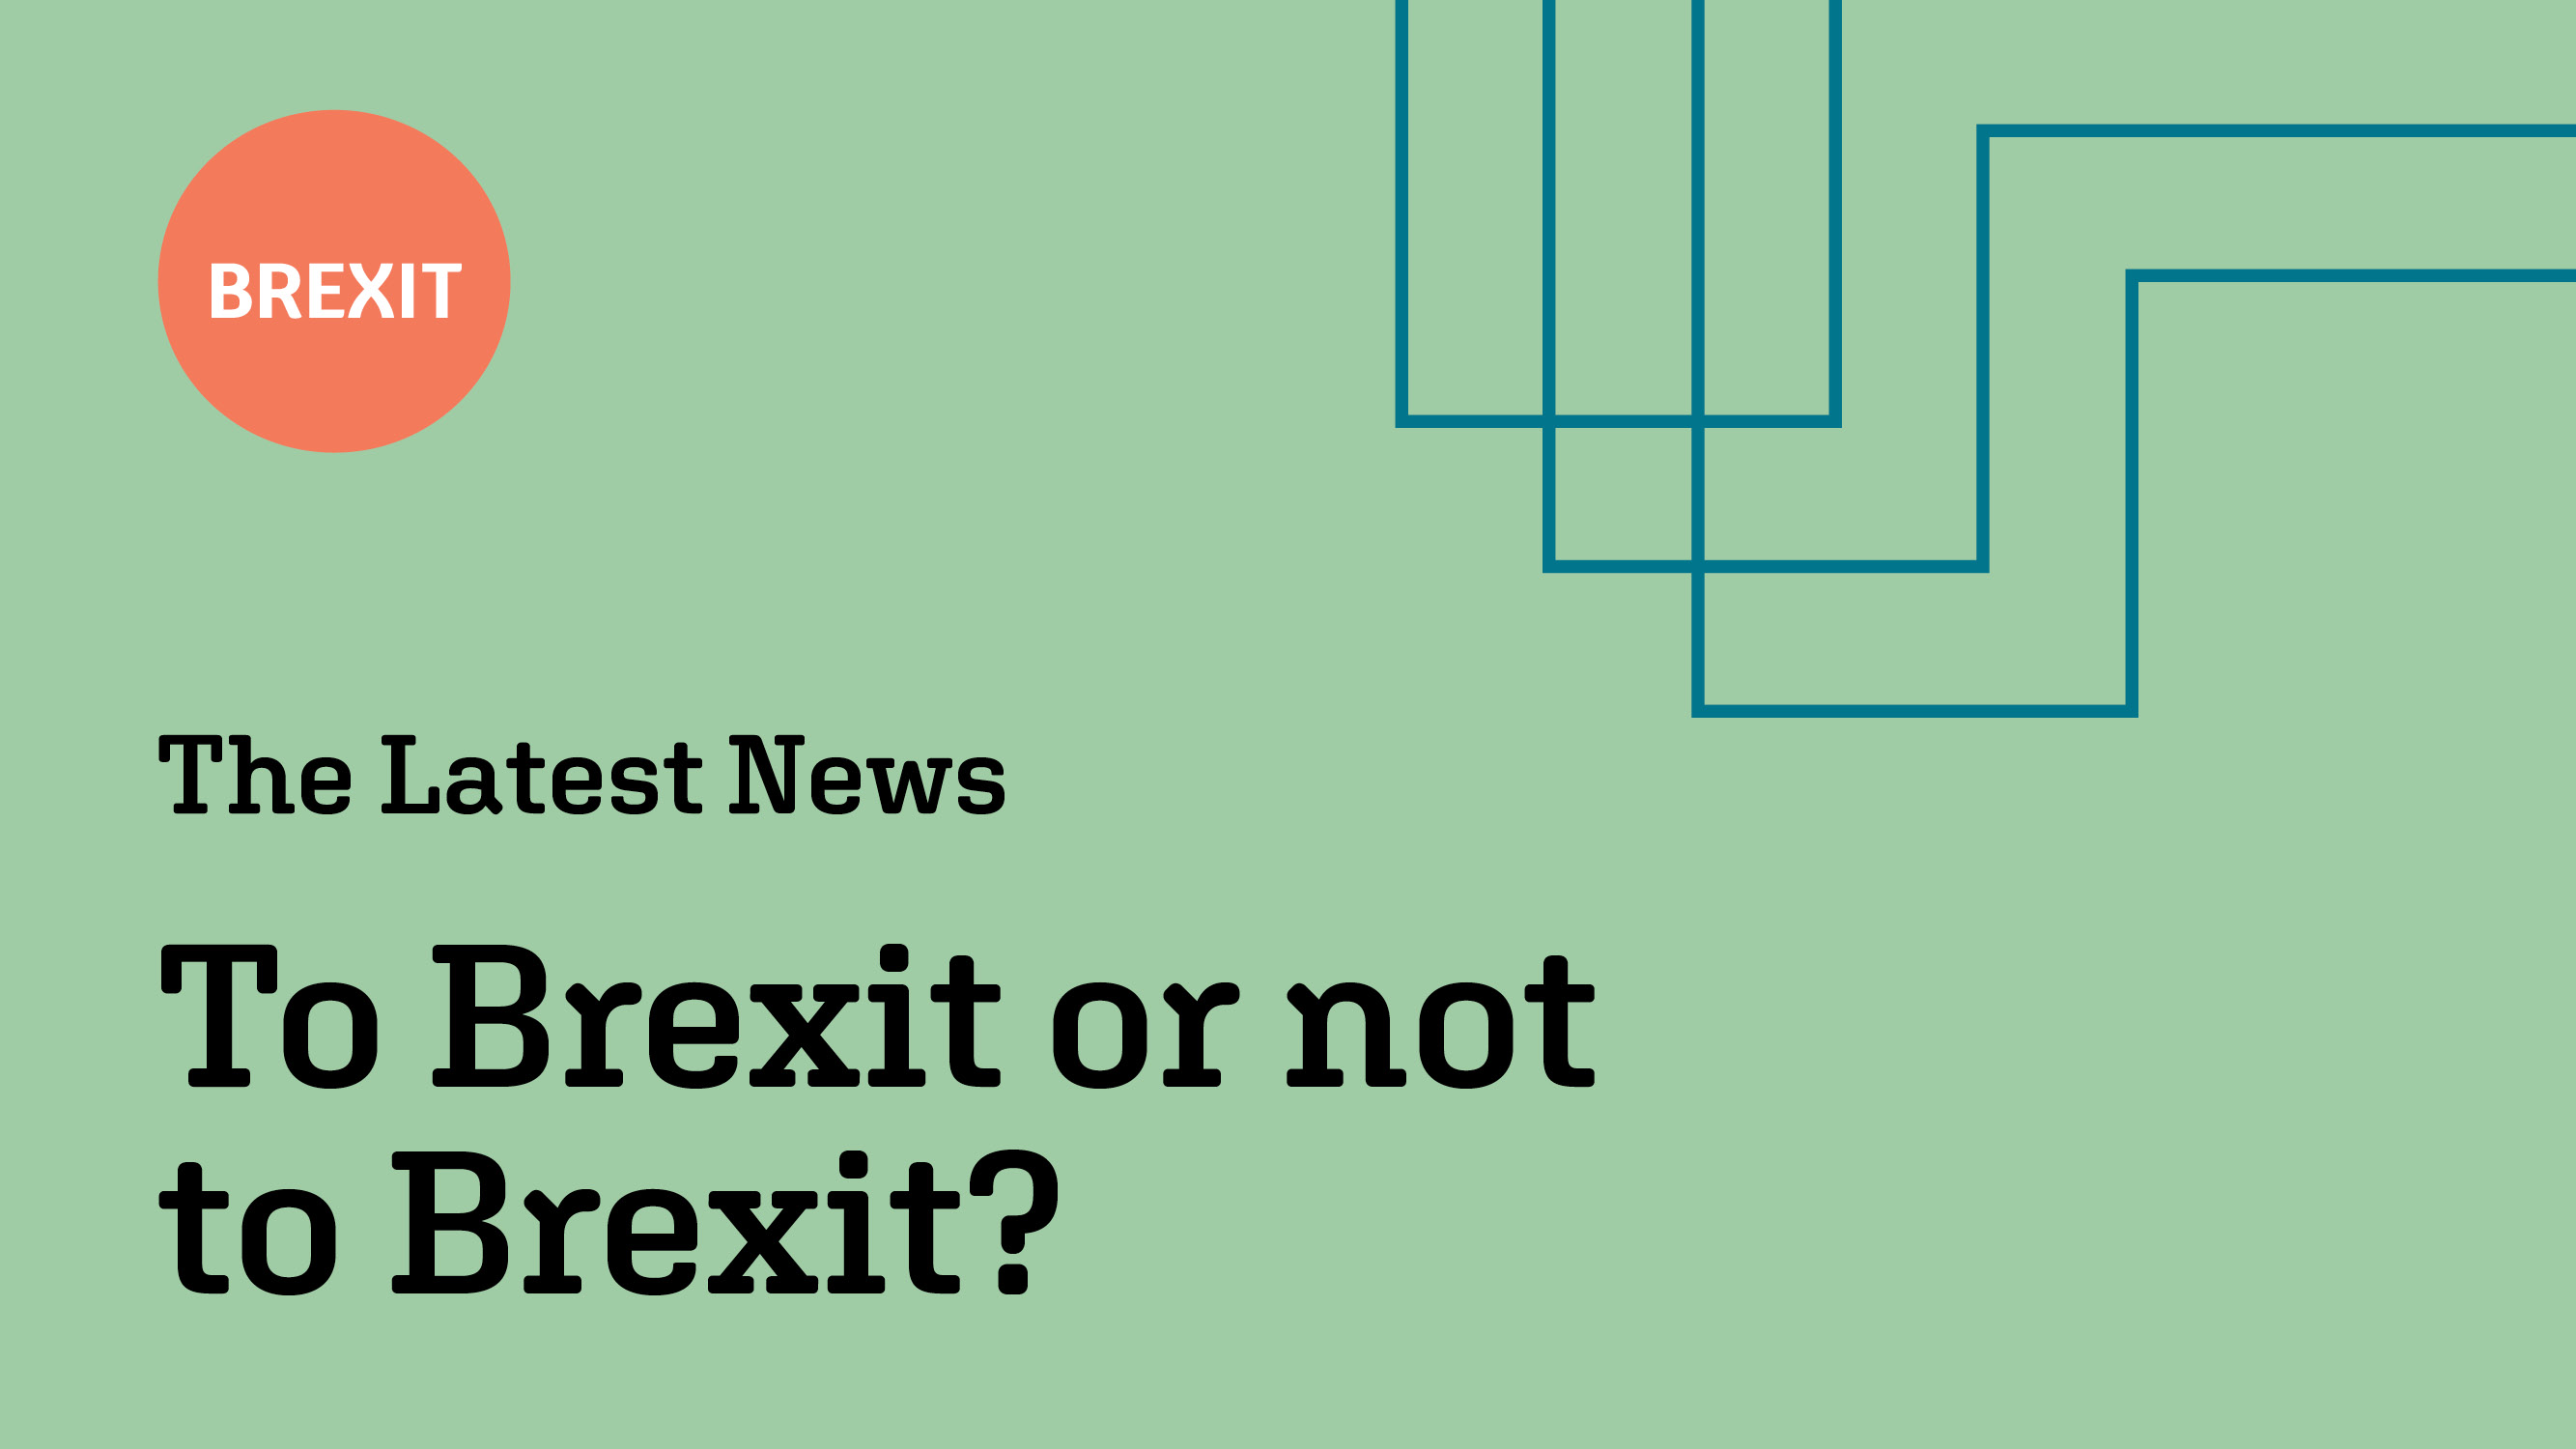 To Brexit or not to Brexit? The latest news